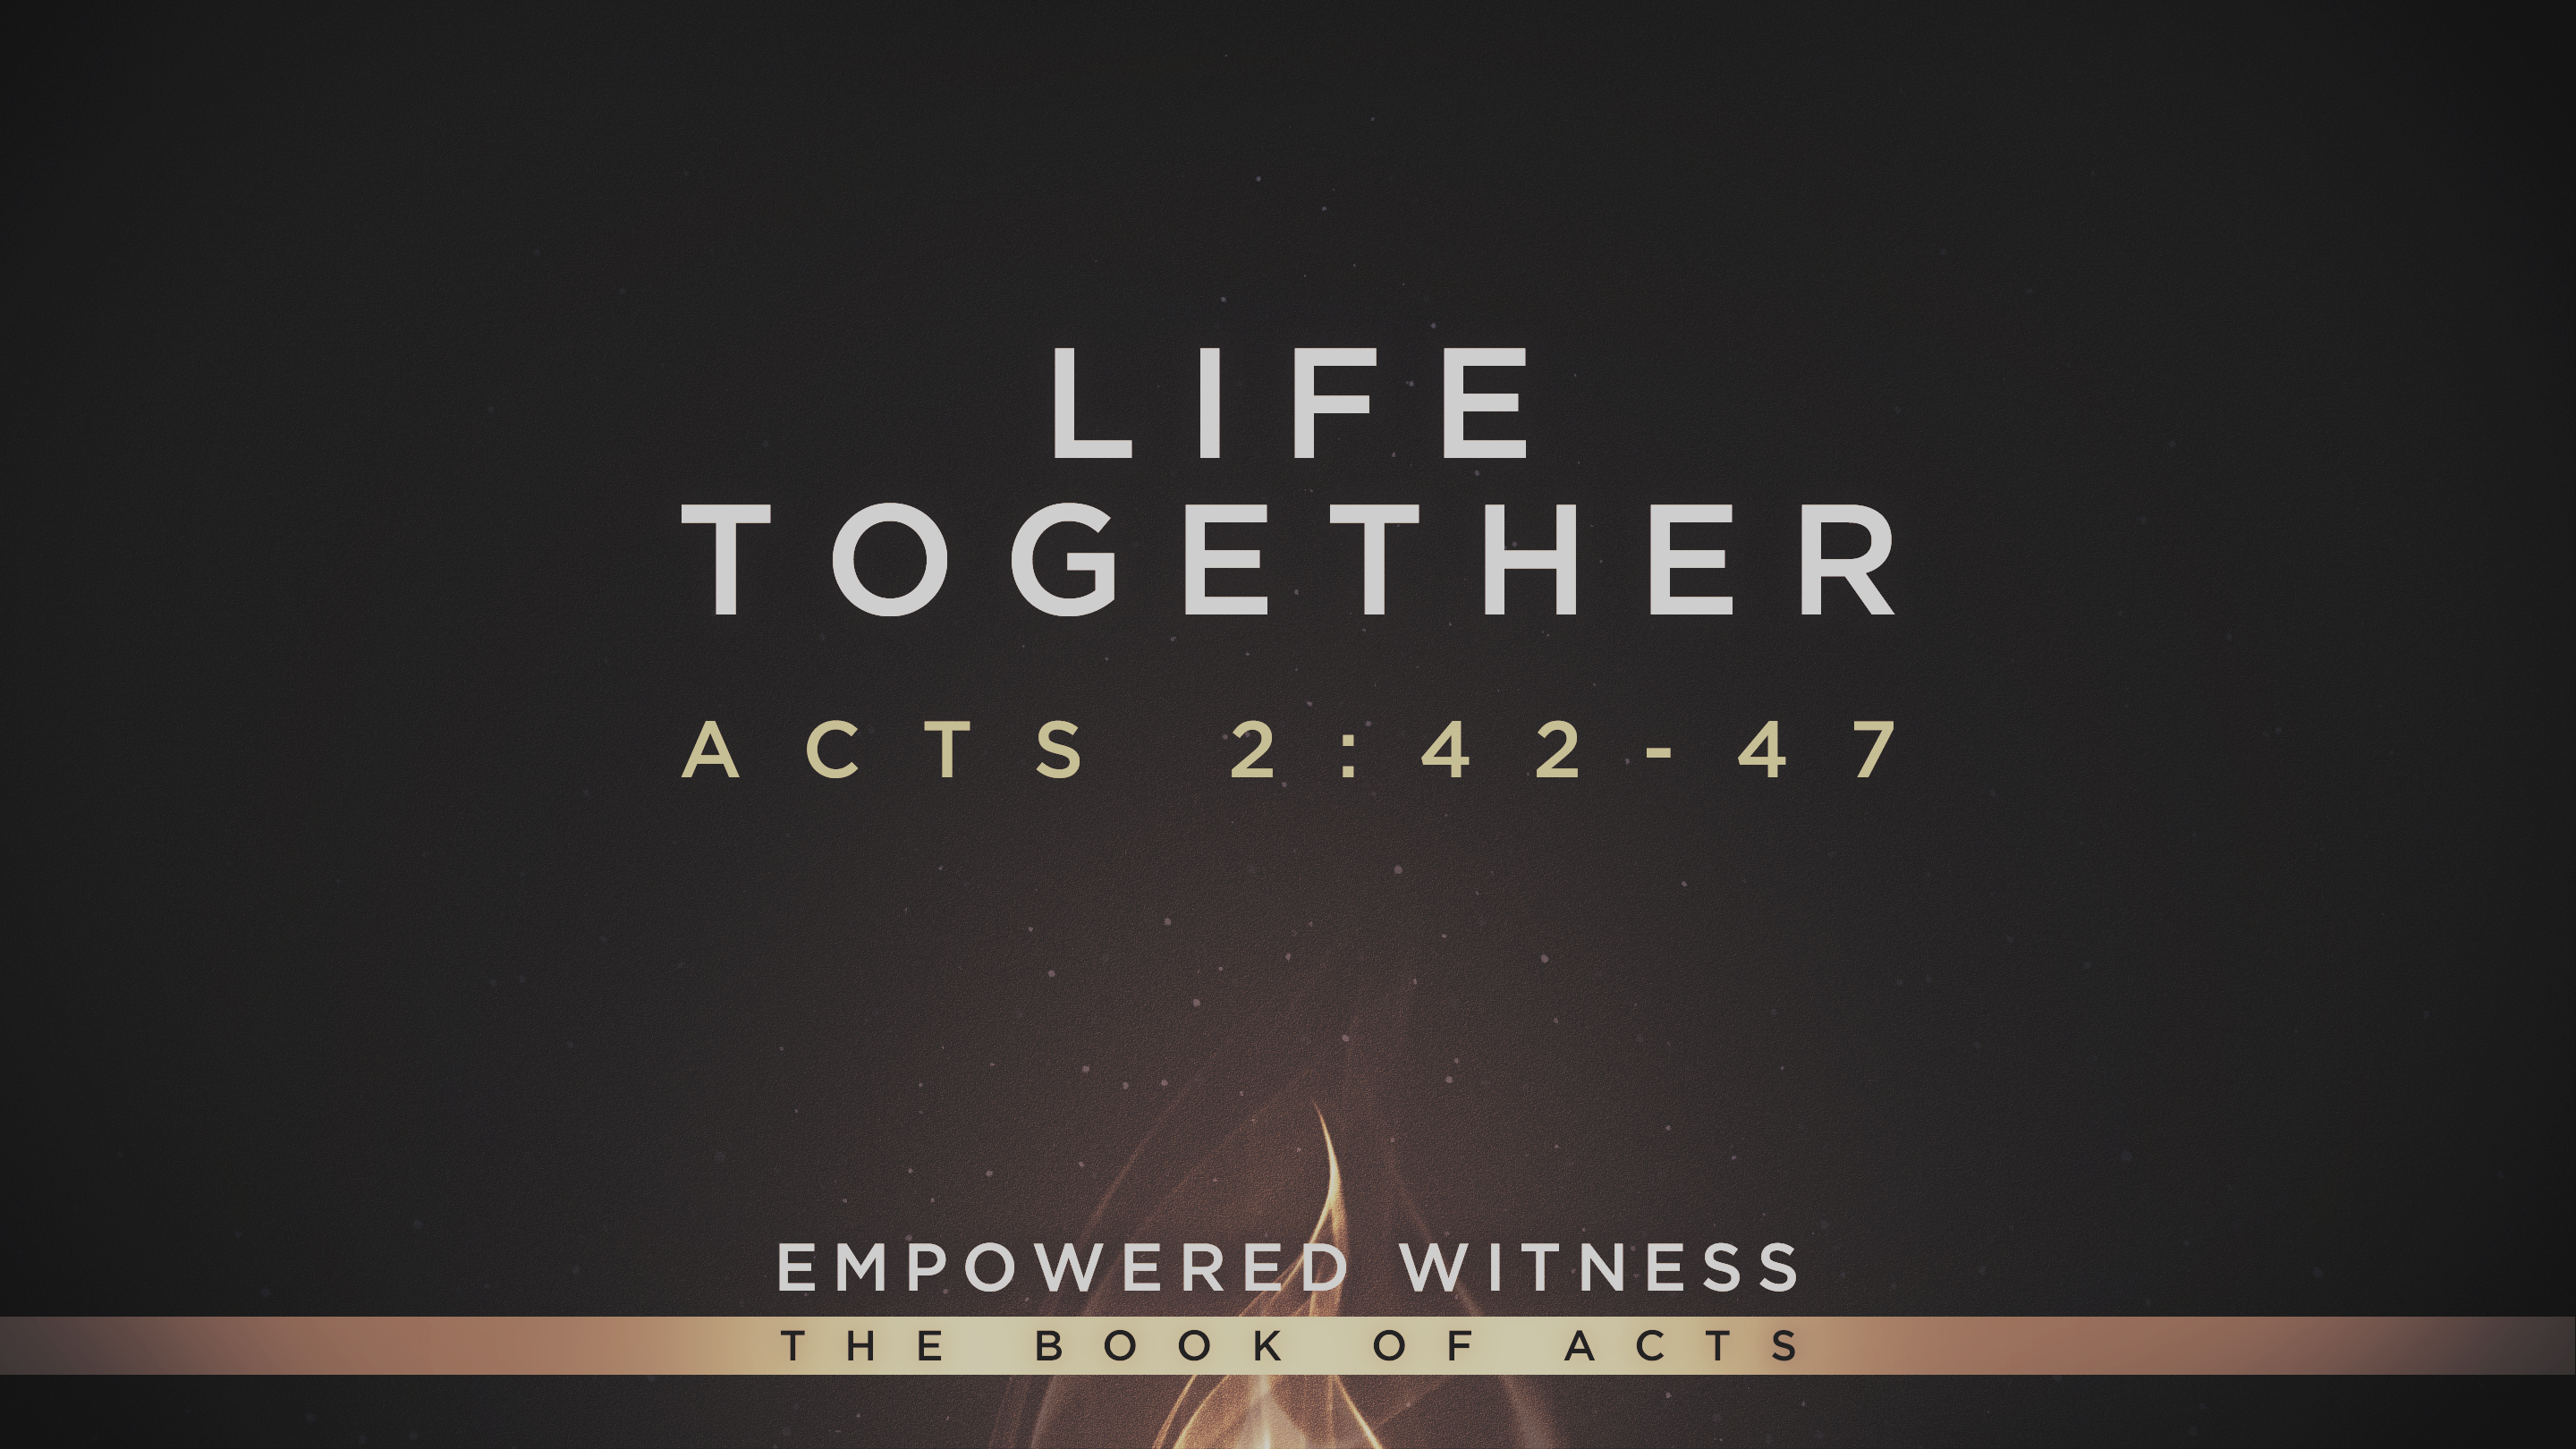 Life Together: Acts 2:42-47